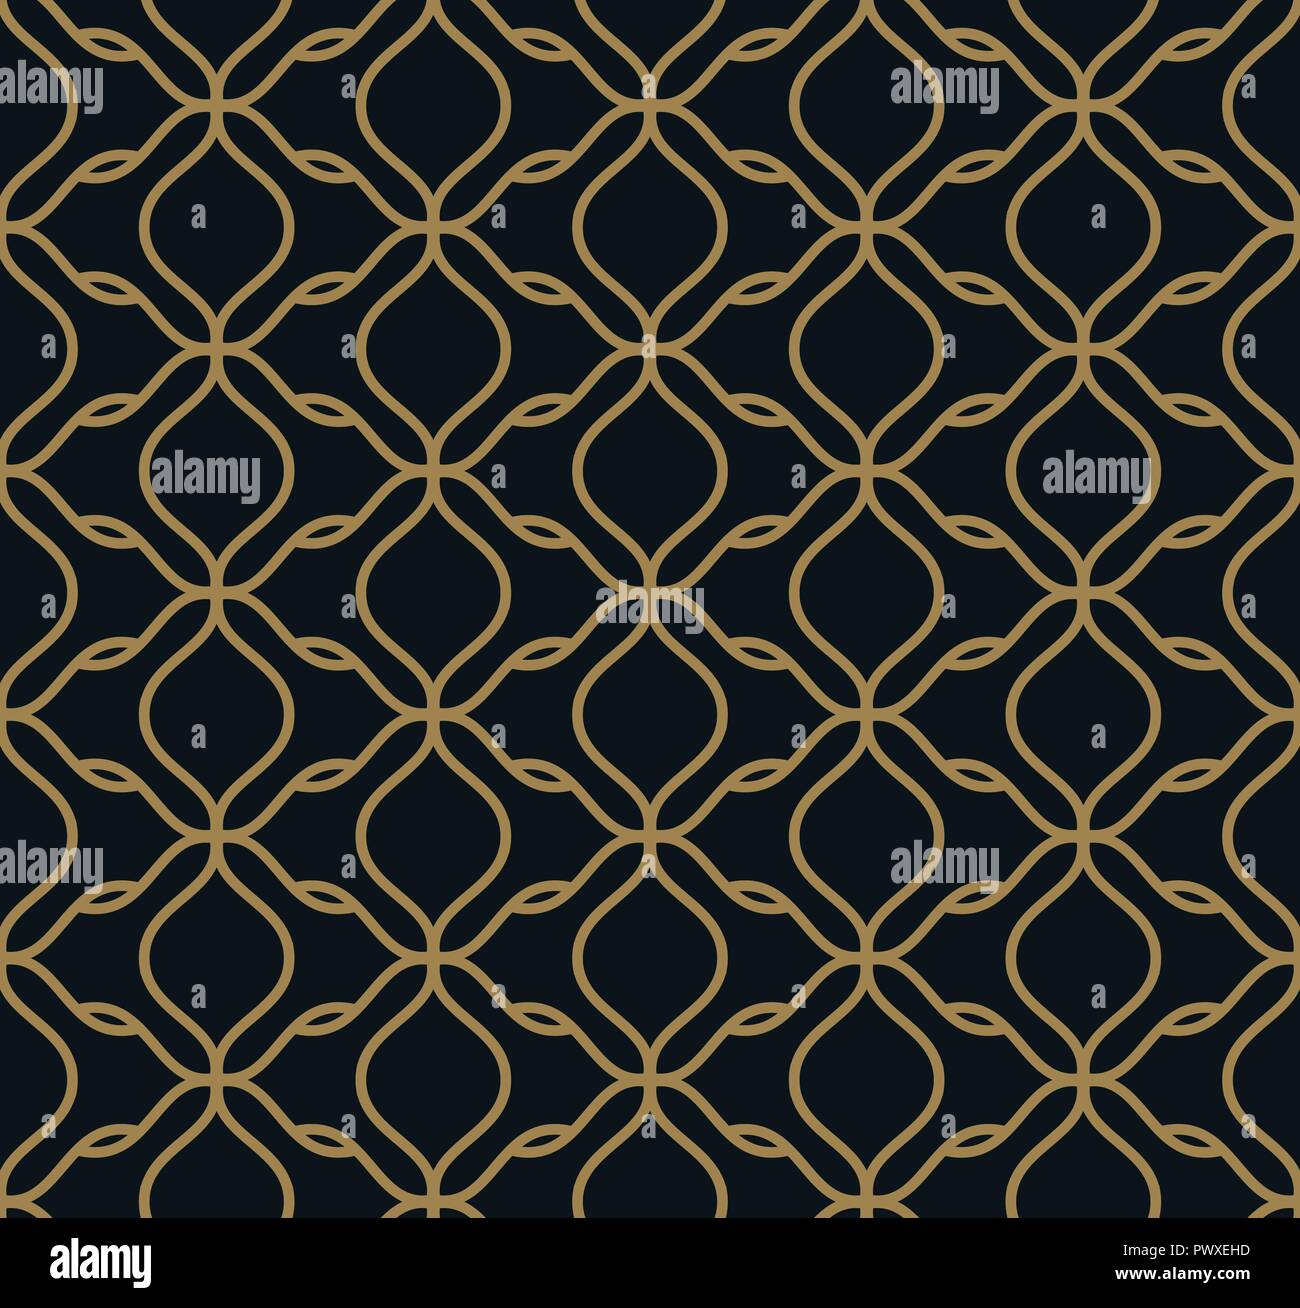 Seamless Pattern Of Intersecting Thin Gold Lines On Black